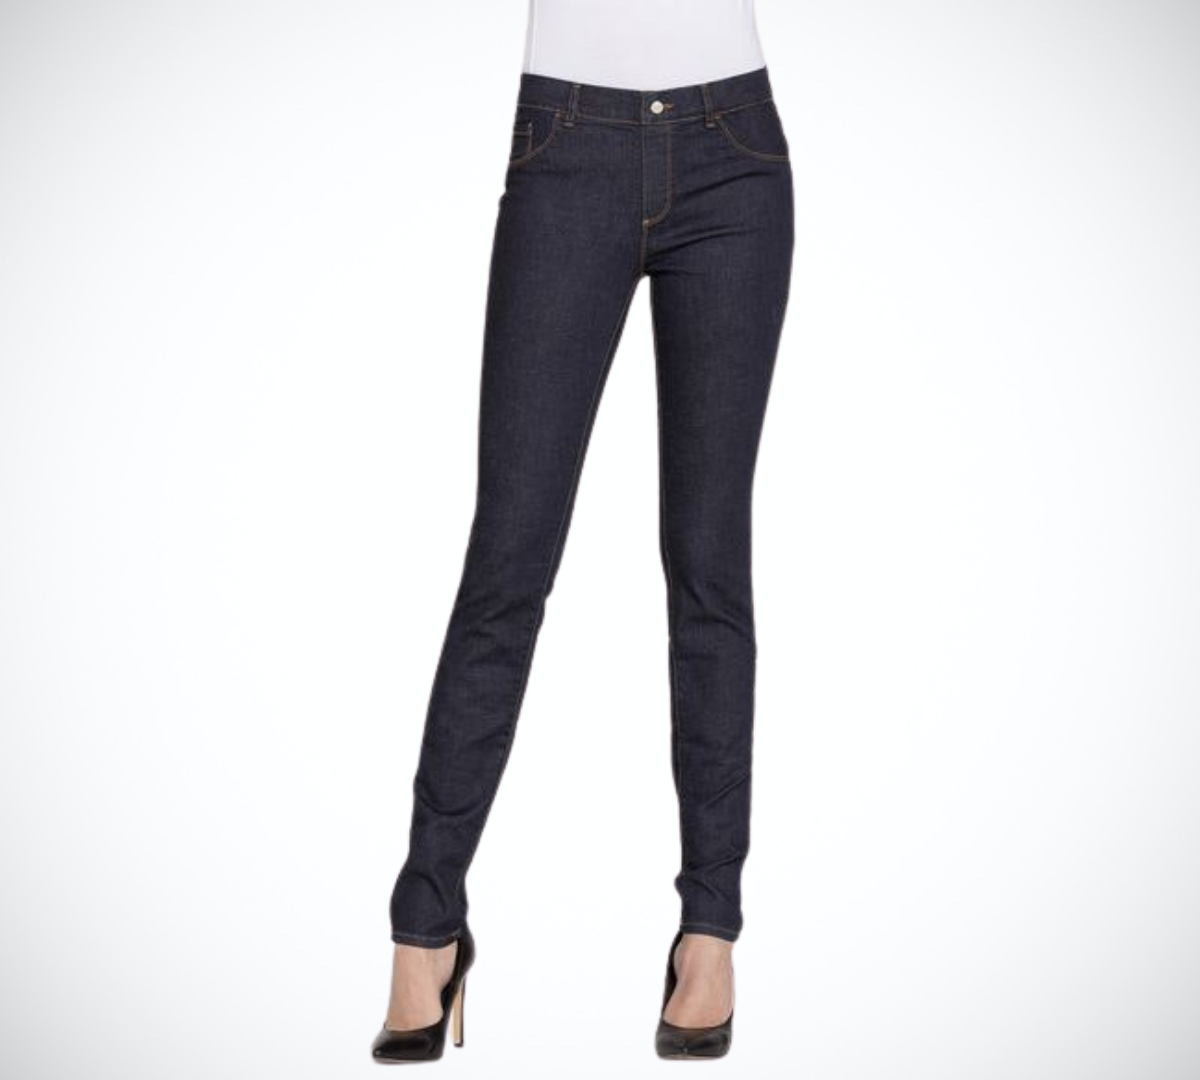 Legg-jeans super stretch regolare 767L Carrera